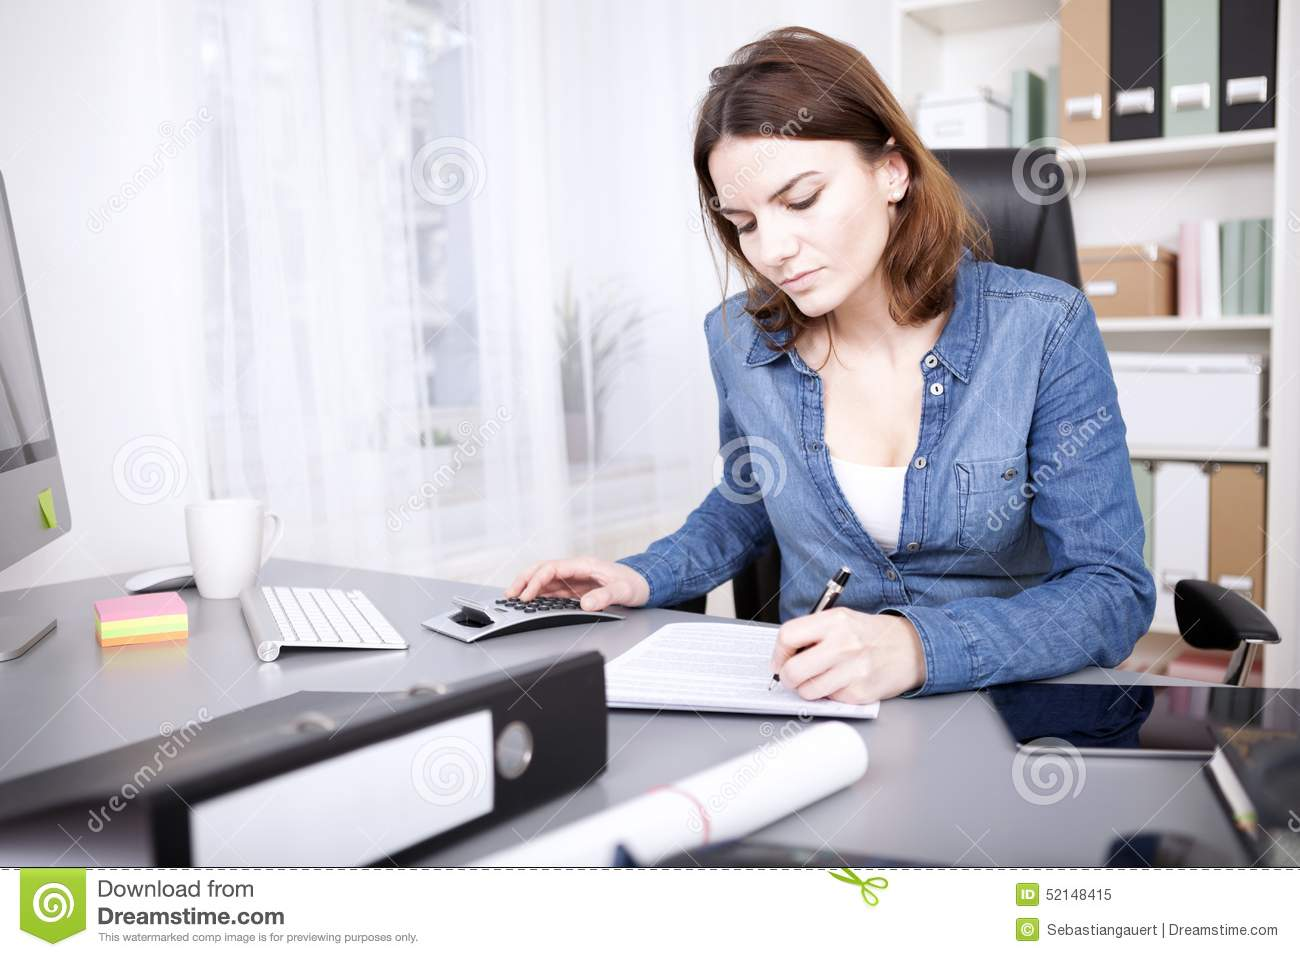 Businesswoman Sitting In Office Reception Area Looking At